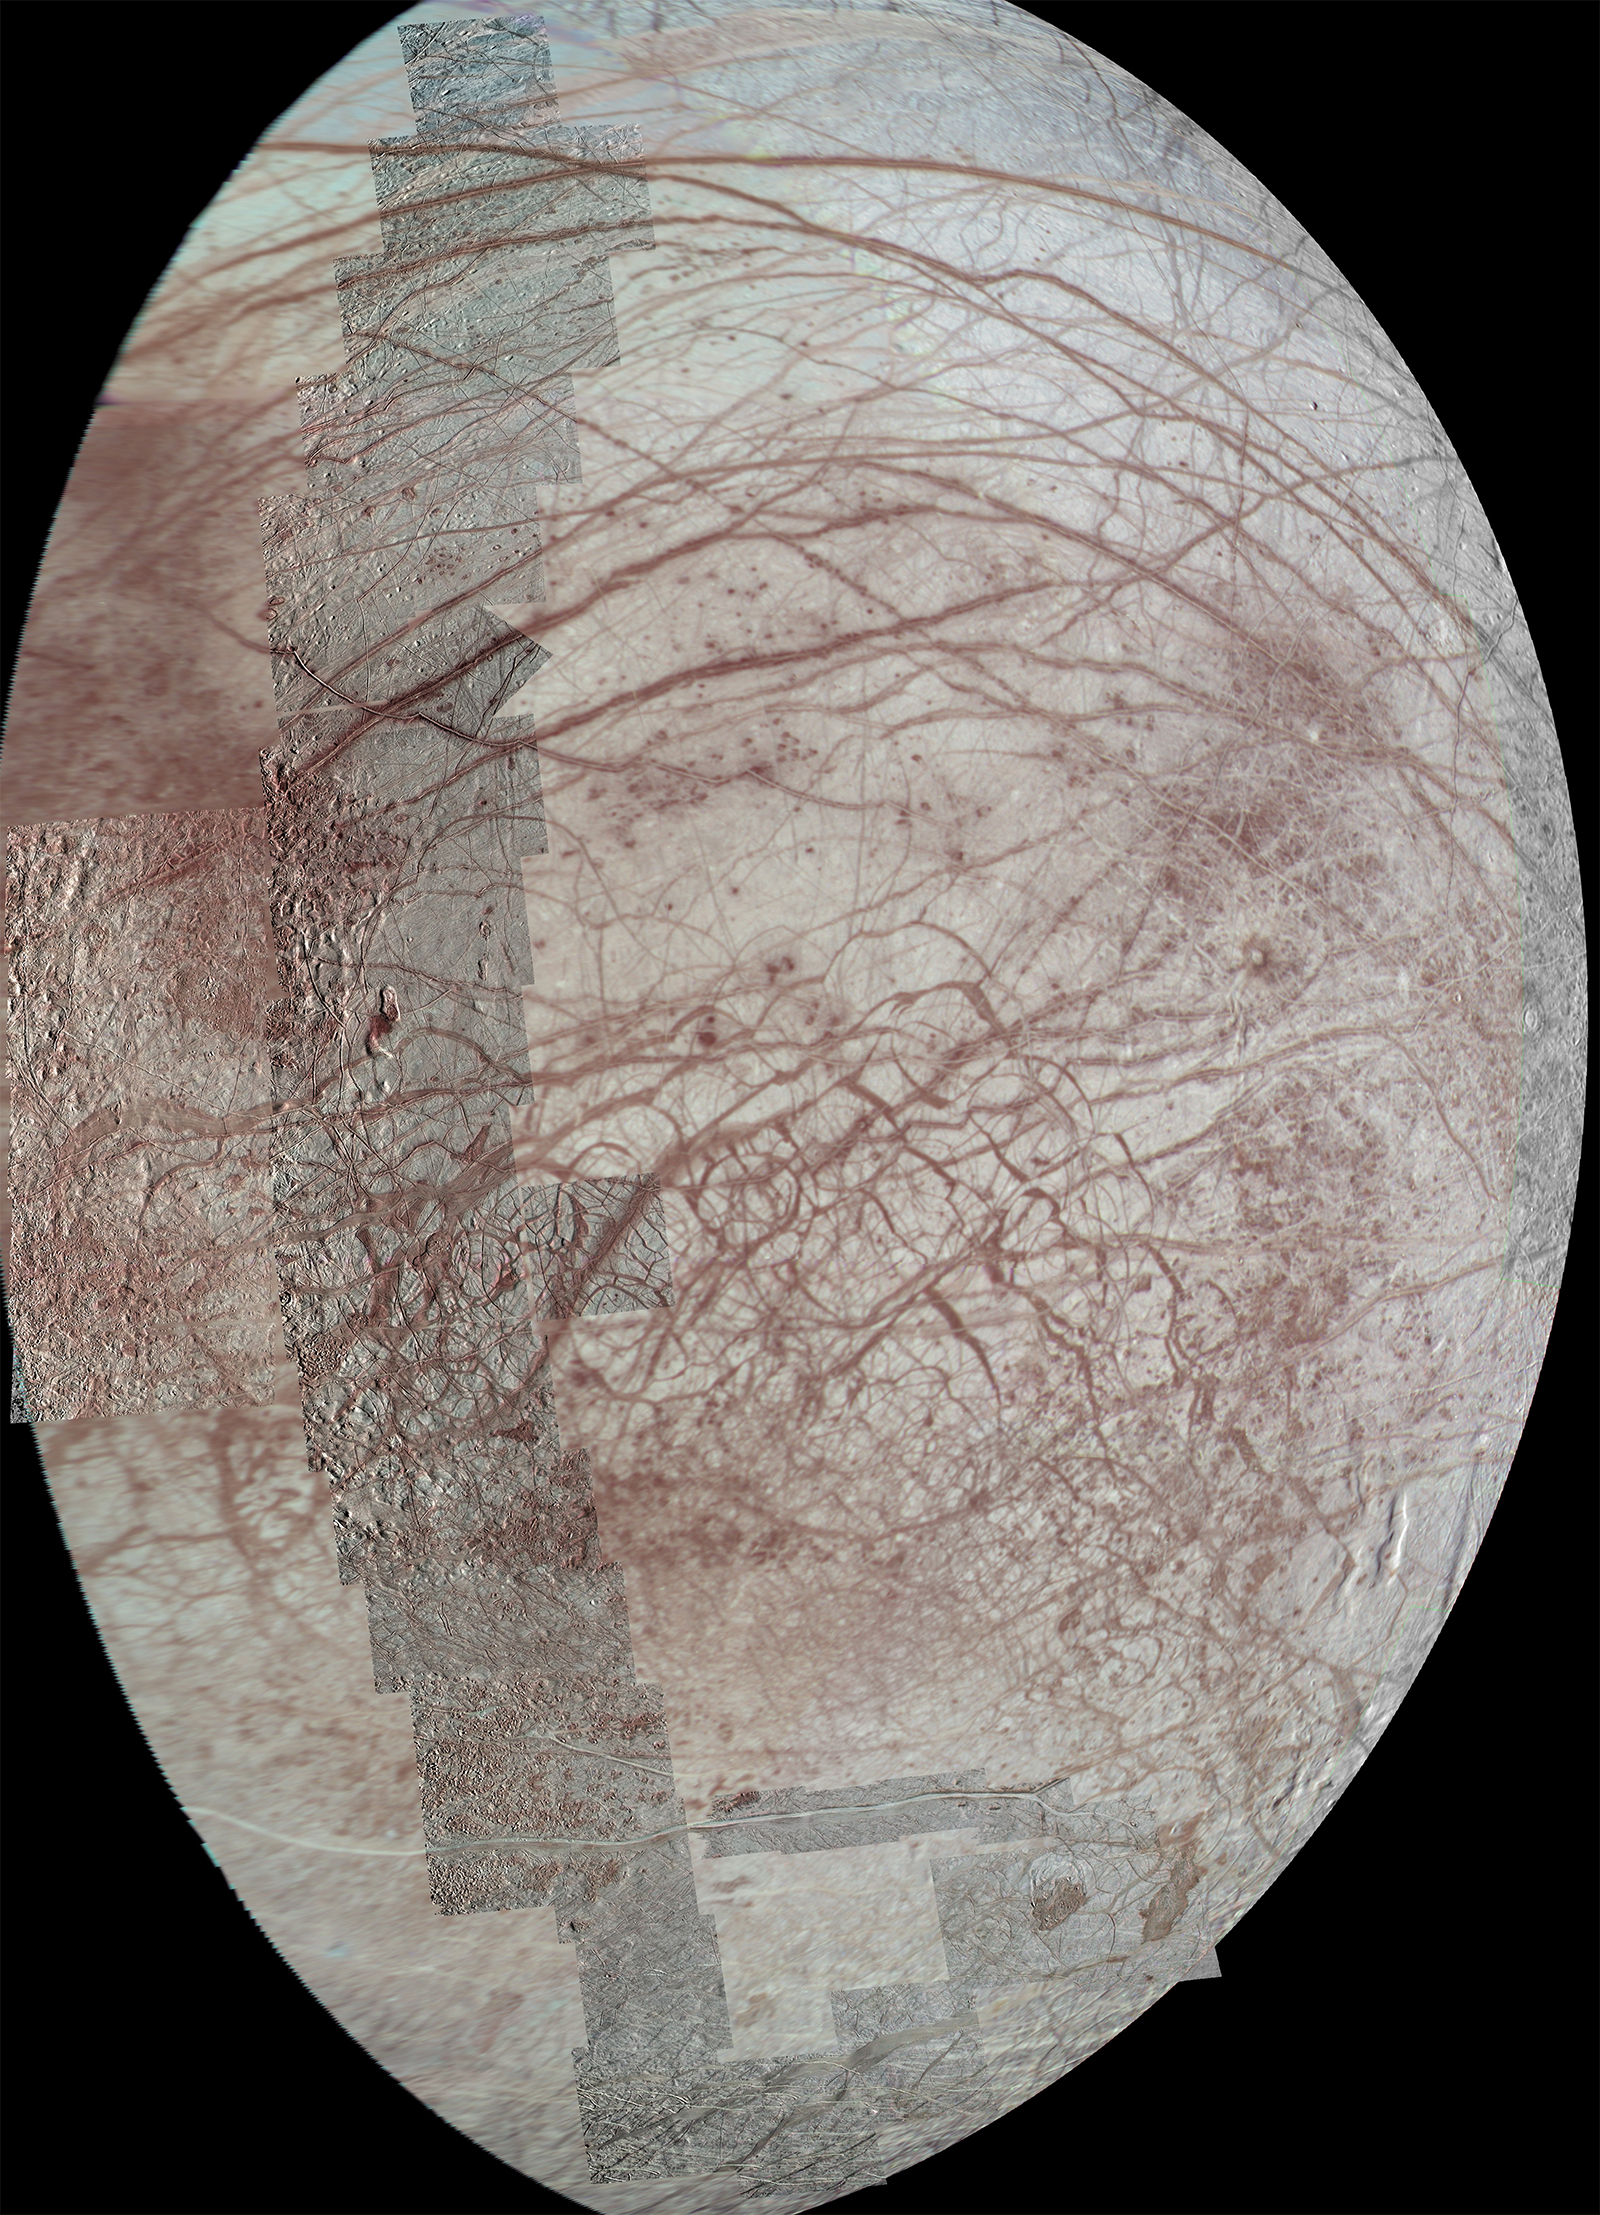 Image of Europa from pole-to-pole.